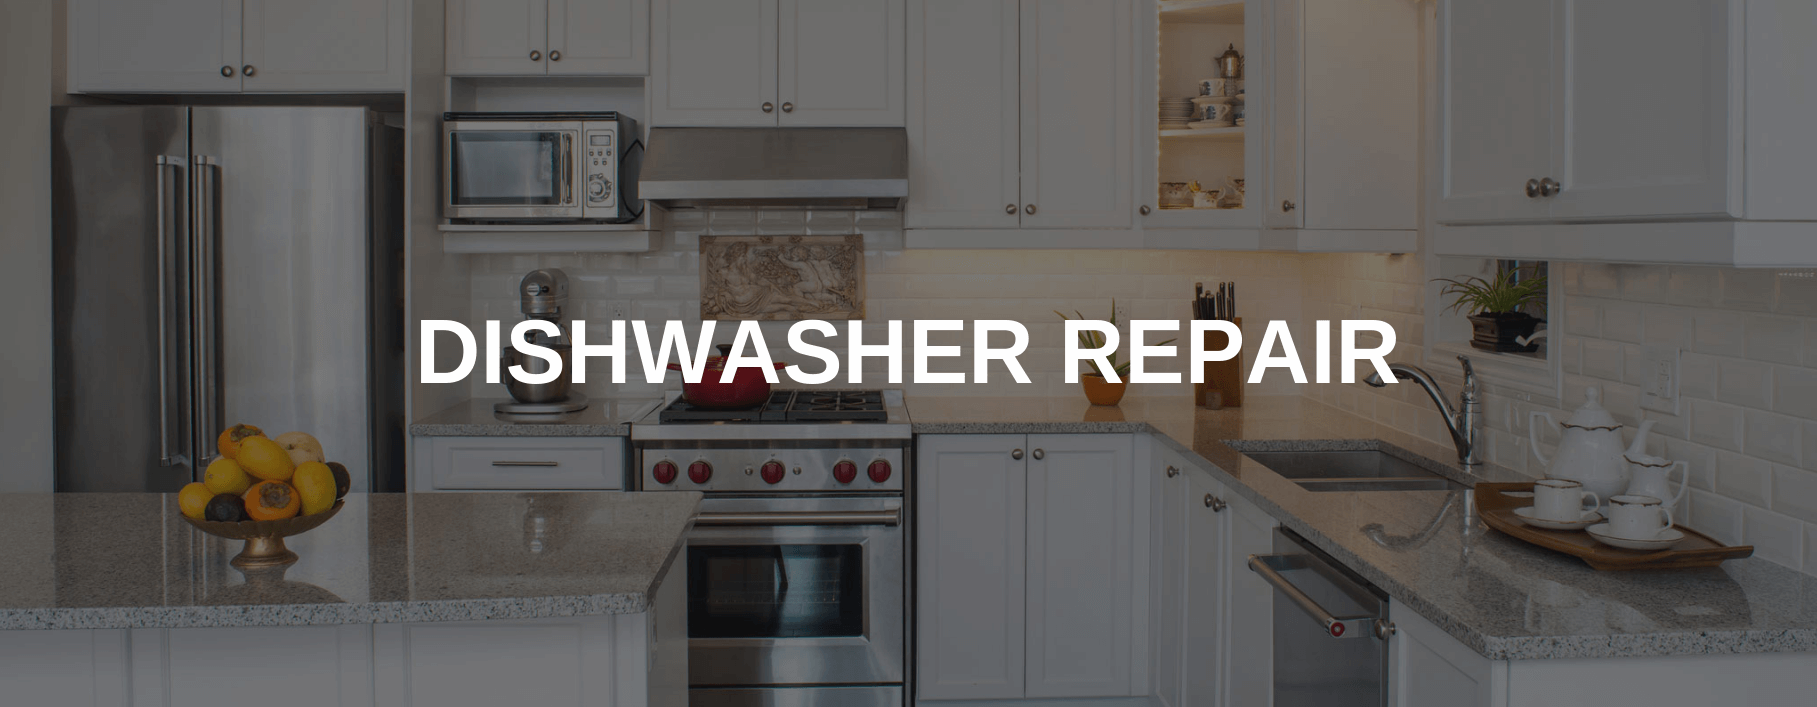 dishwasher repair santa clarita